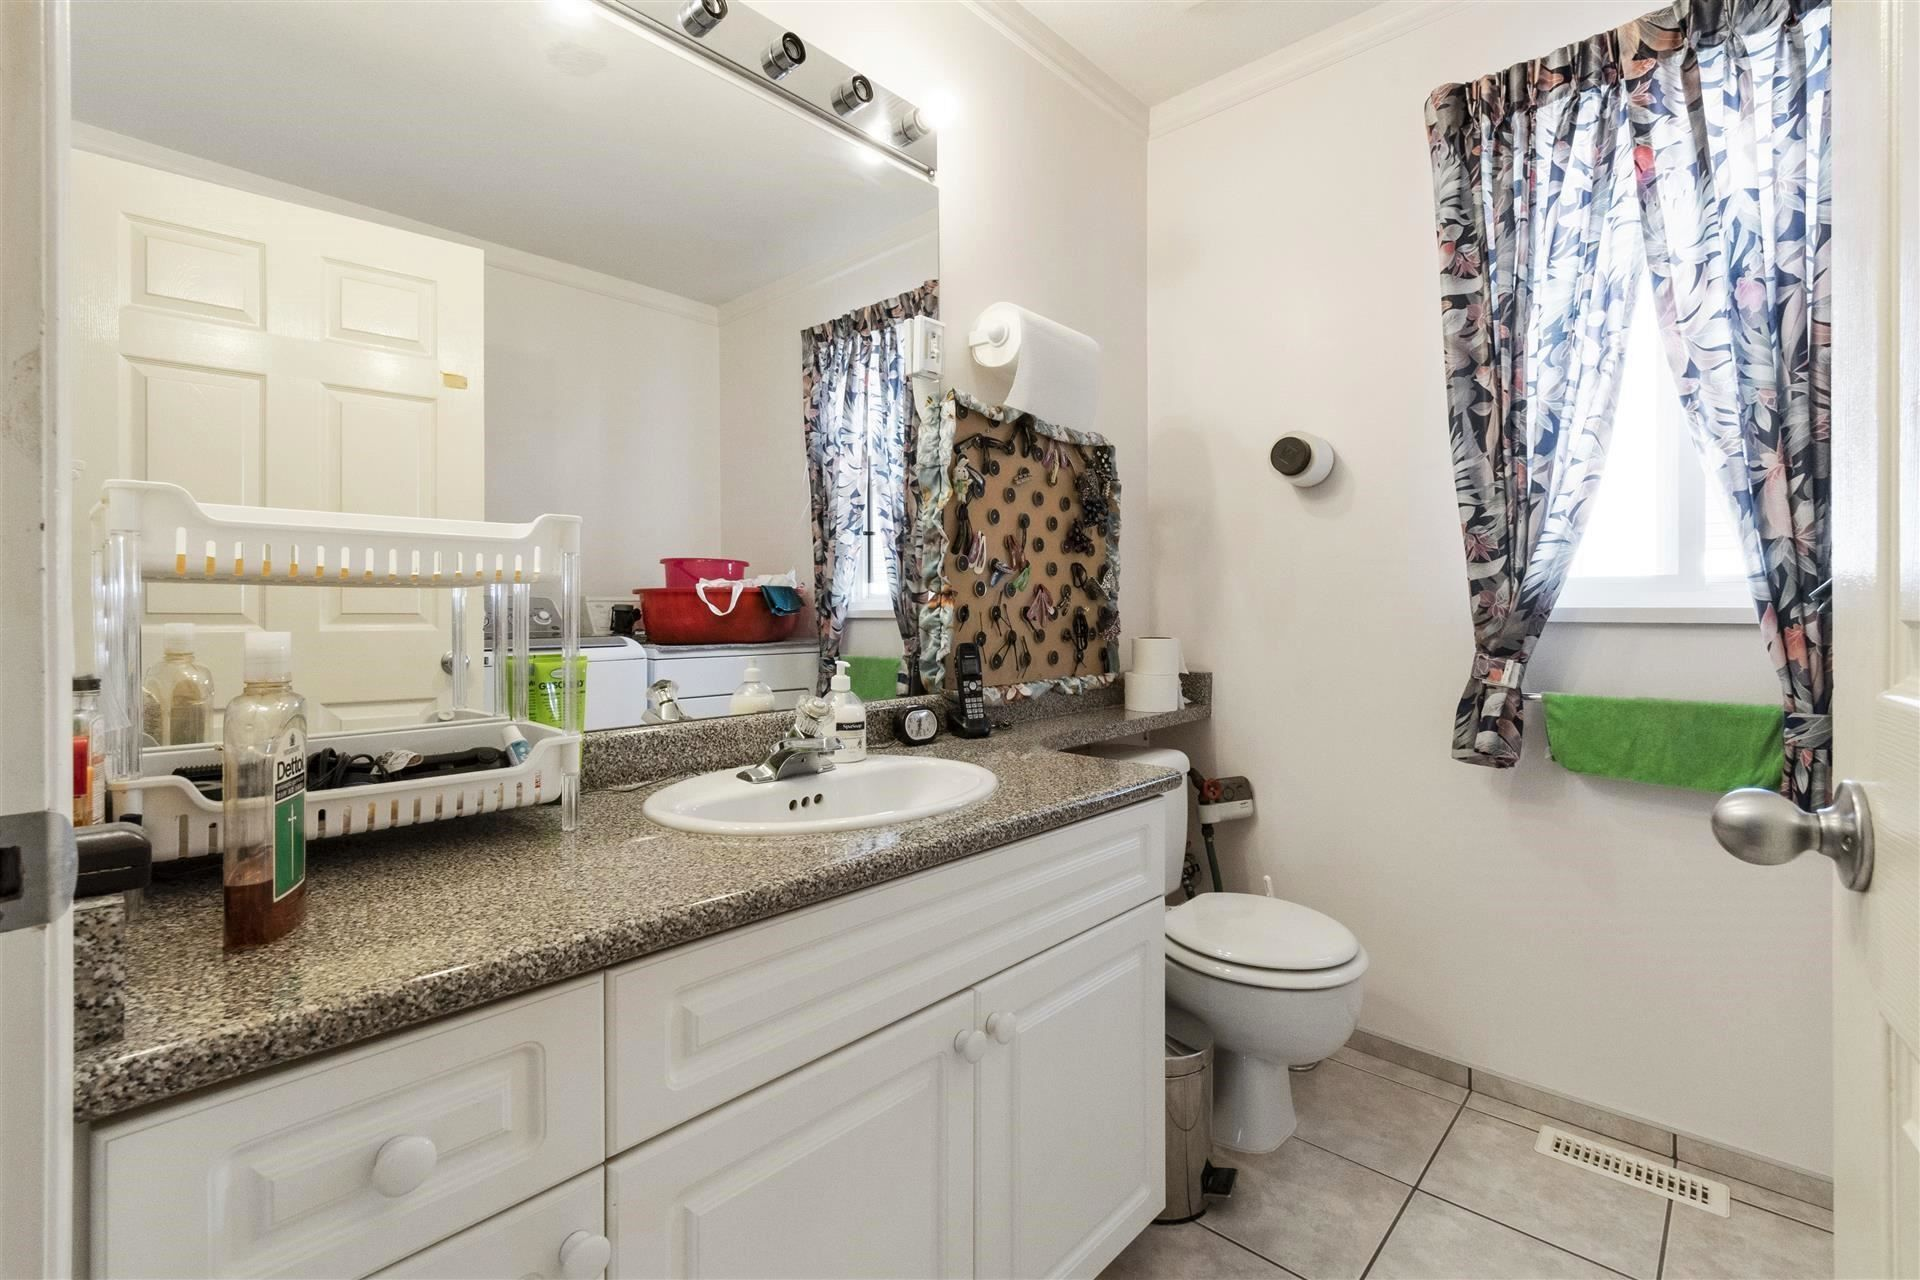 Photo 16: Photos: 139 SAN JUAN Place in Coquitlam: Cape Horn House for sale : MLS®# R2604553